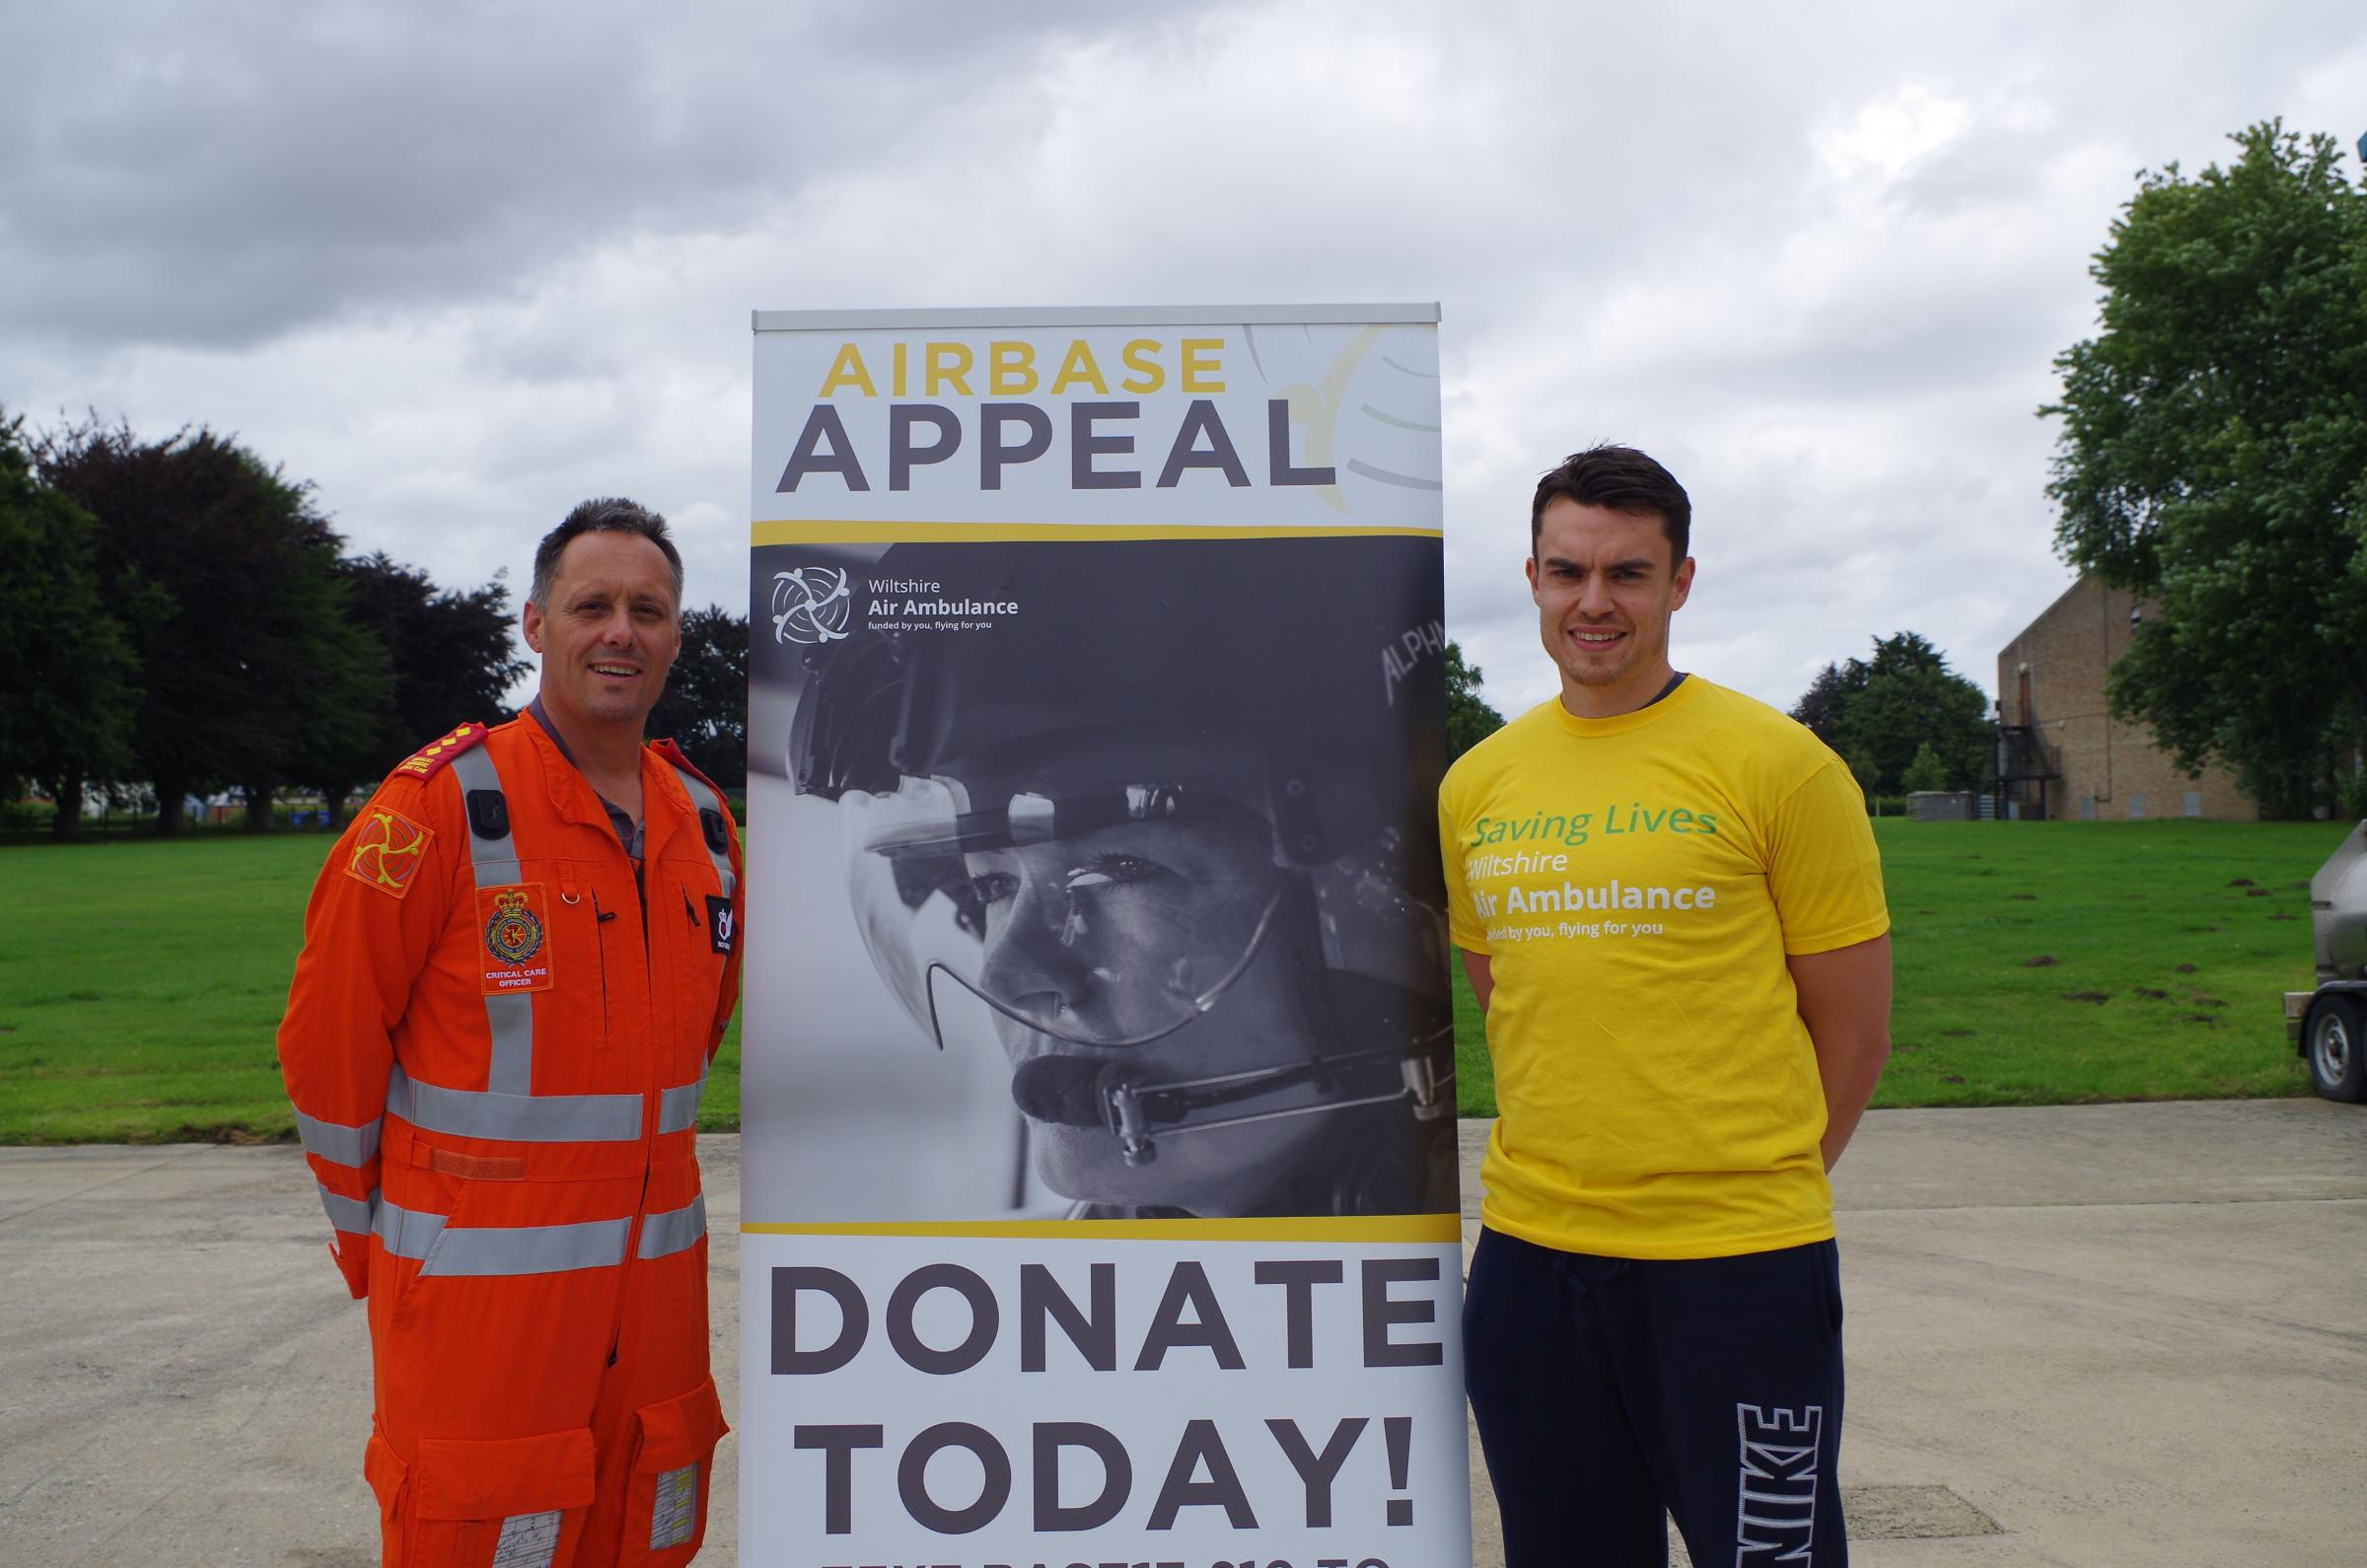 Richard Miller, a Wiltshire Air Ambulance critical care paramedic, with Matt Swift, who is taking part in the New Swindon Half Marathon for the WAA Airbase Appeal